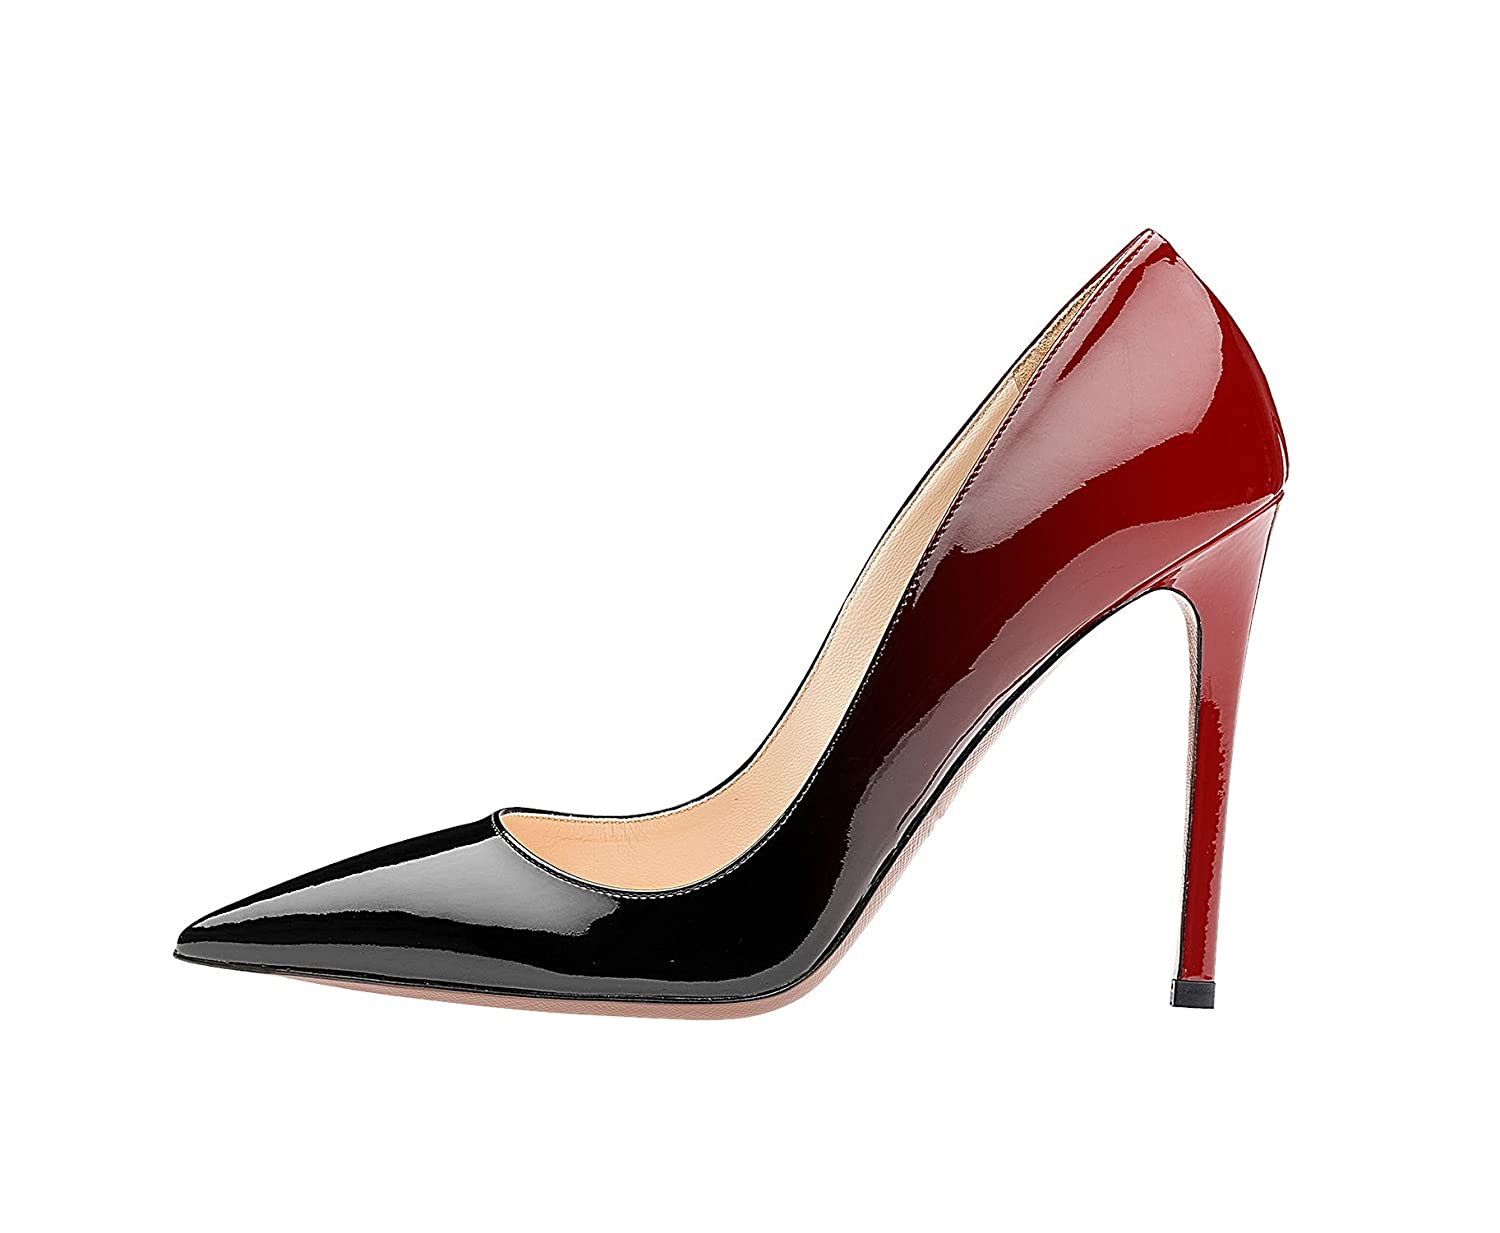 SexyPrey Women's Pointy Toe Stiletto Shoes Formal Office Evening Pumps B074M4G9RN 10 B(M) US|Black and Red